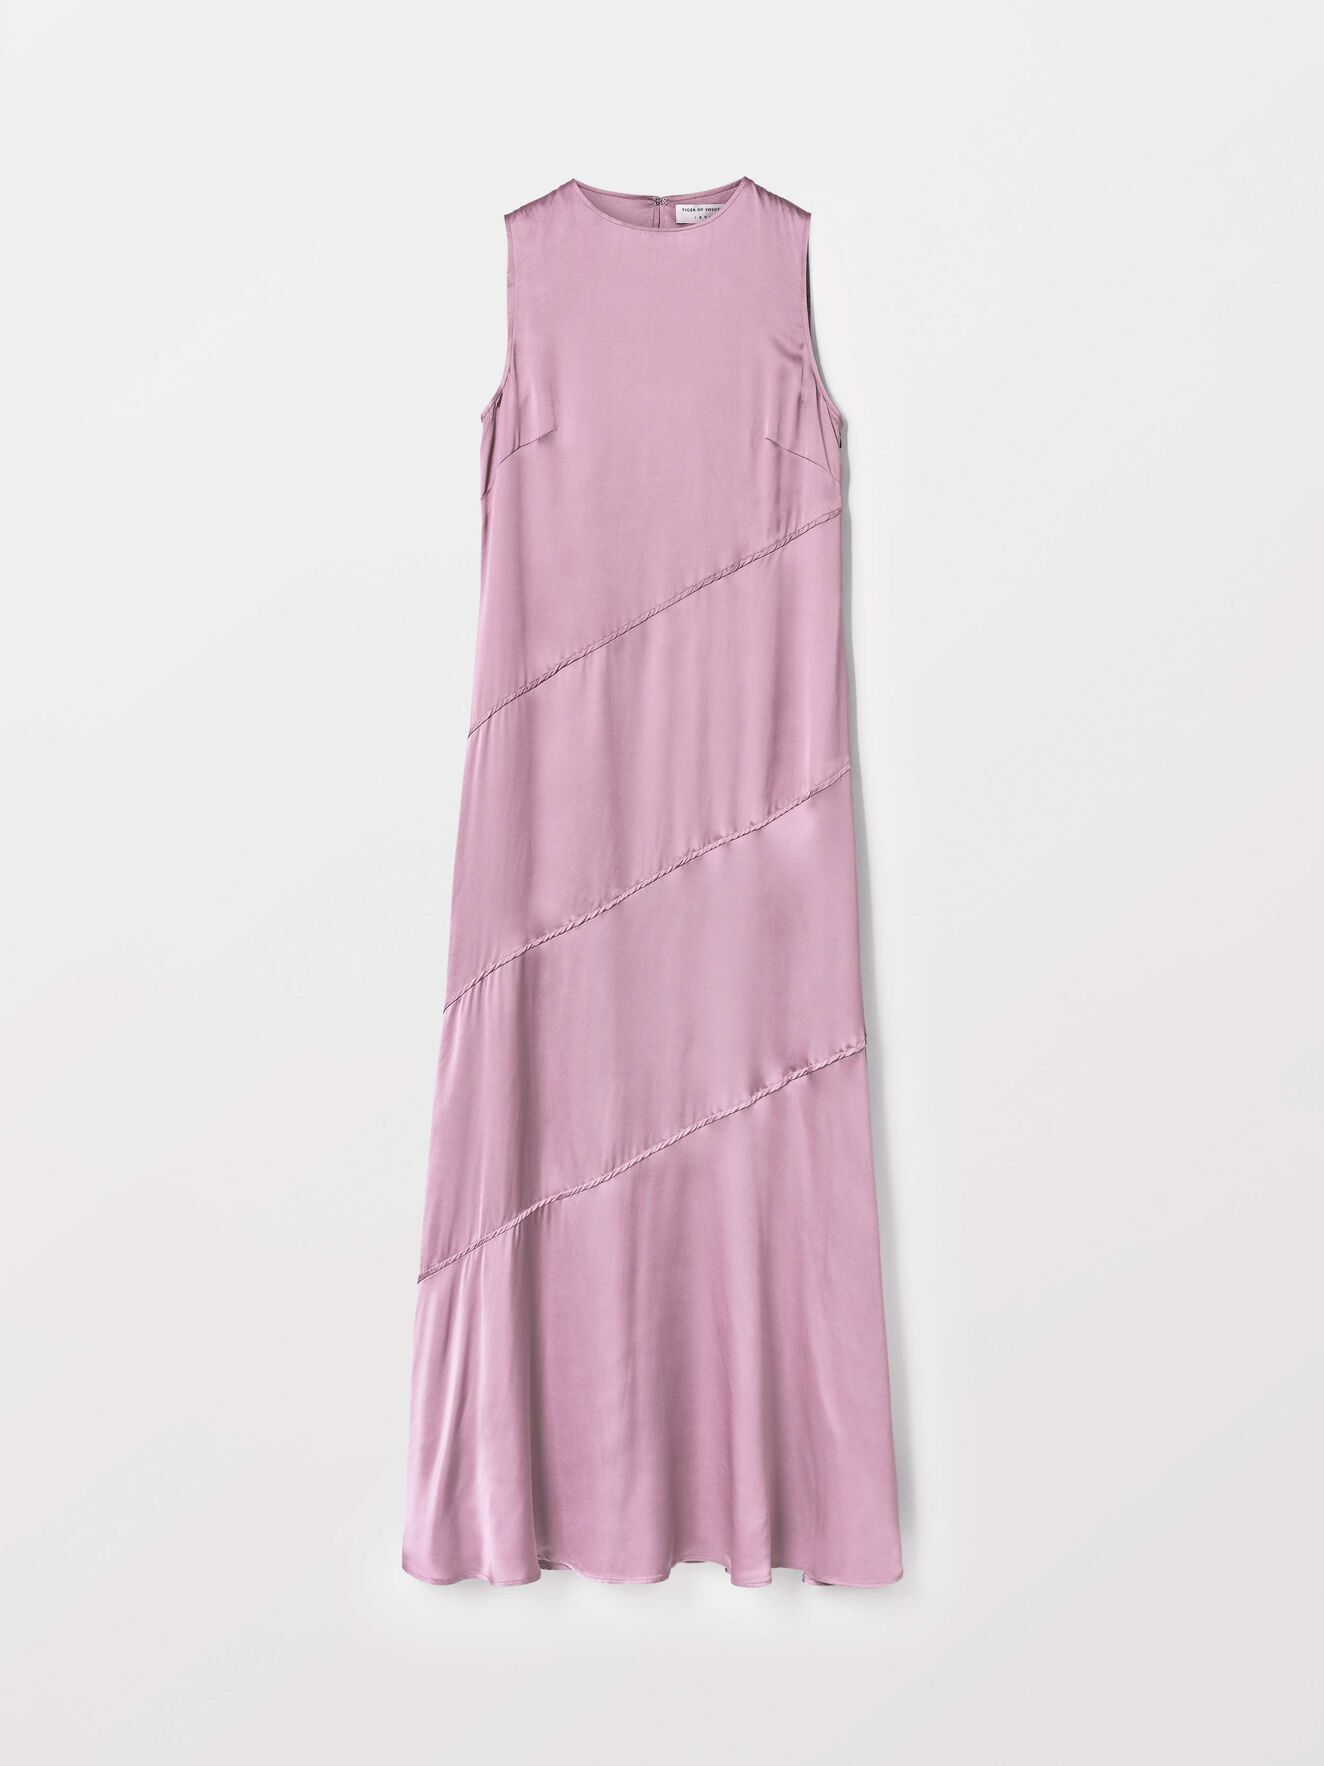 Kungsan Dress in Mulberry Dream from Tiger of Sweden